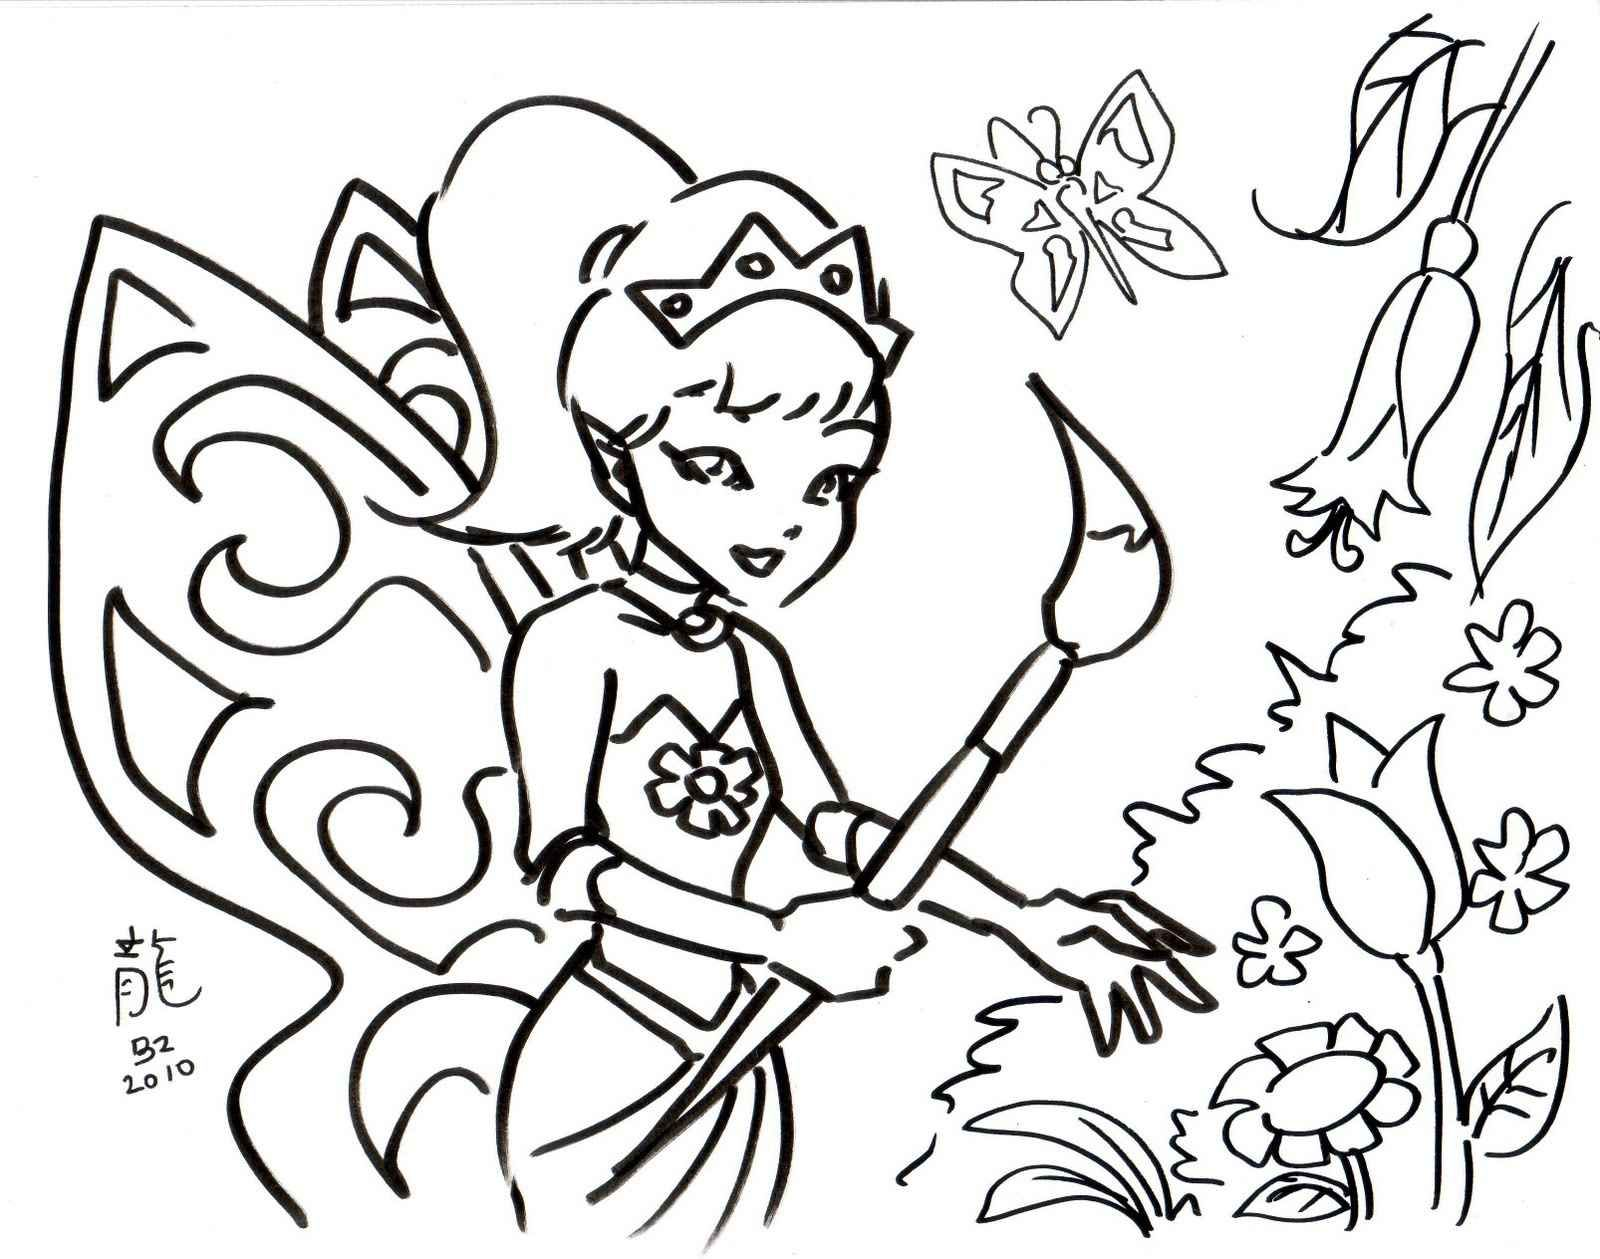 Third Grade Coloring Pages At Getcolorings